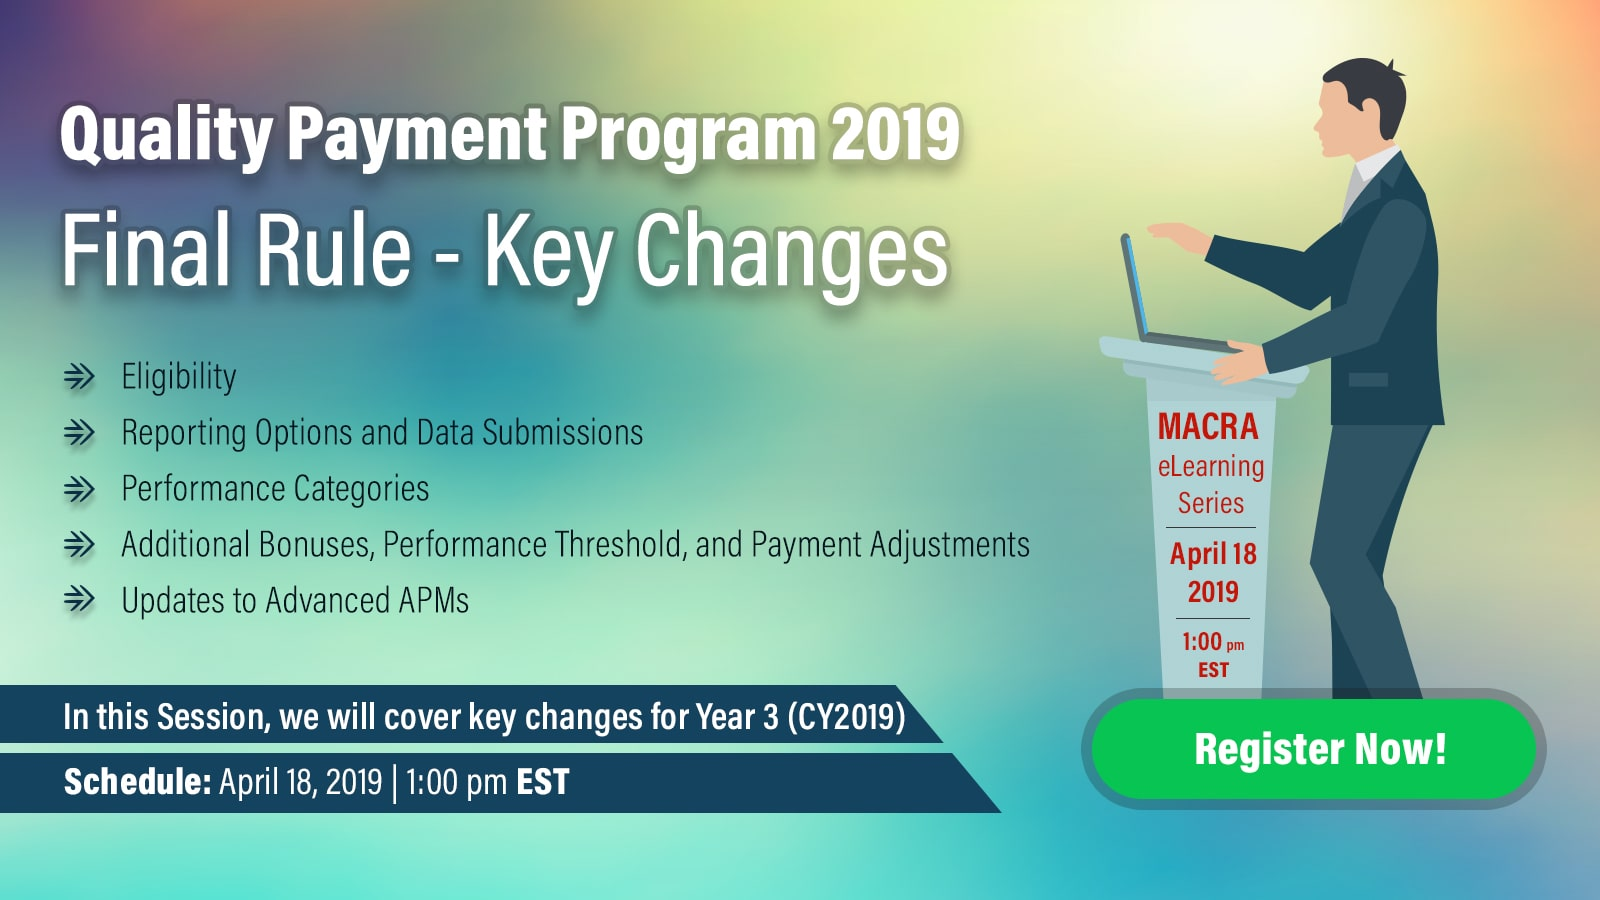 iPatientCare Blog - Quality Payment Program 2019 Final Rule